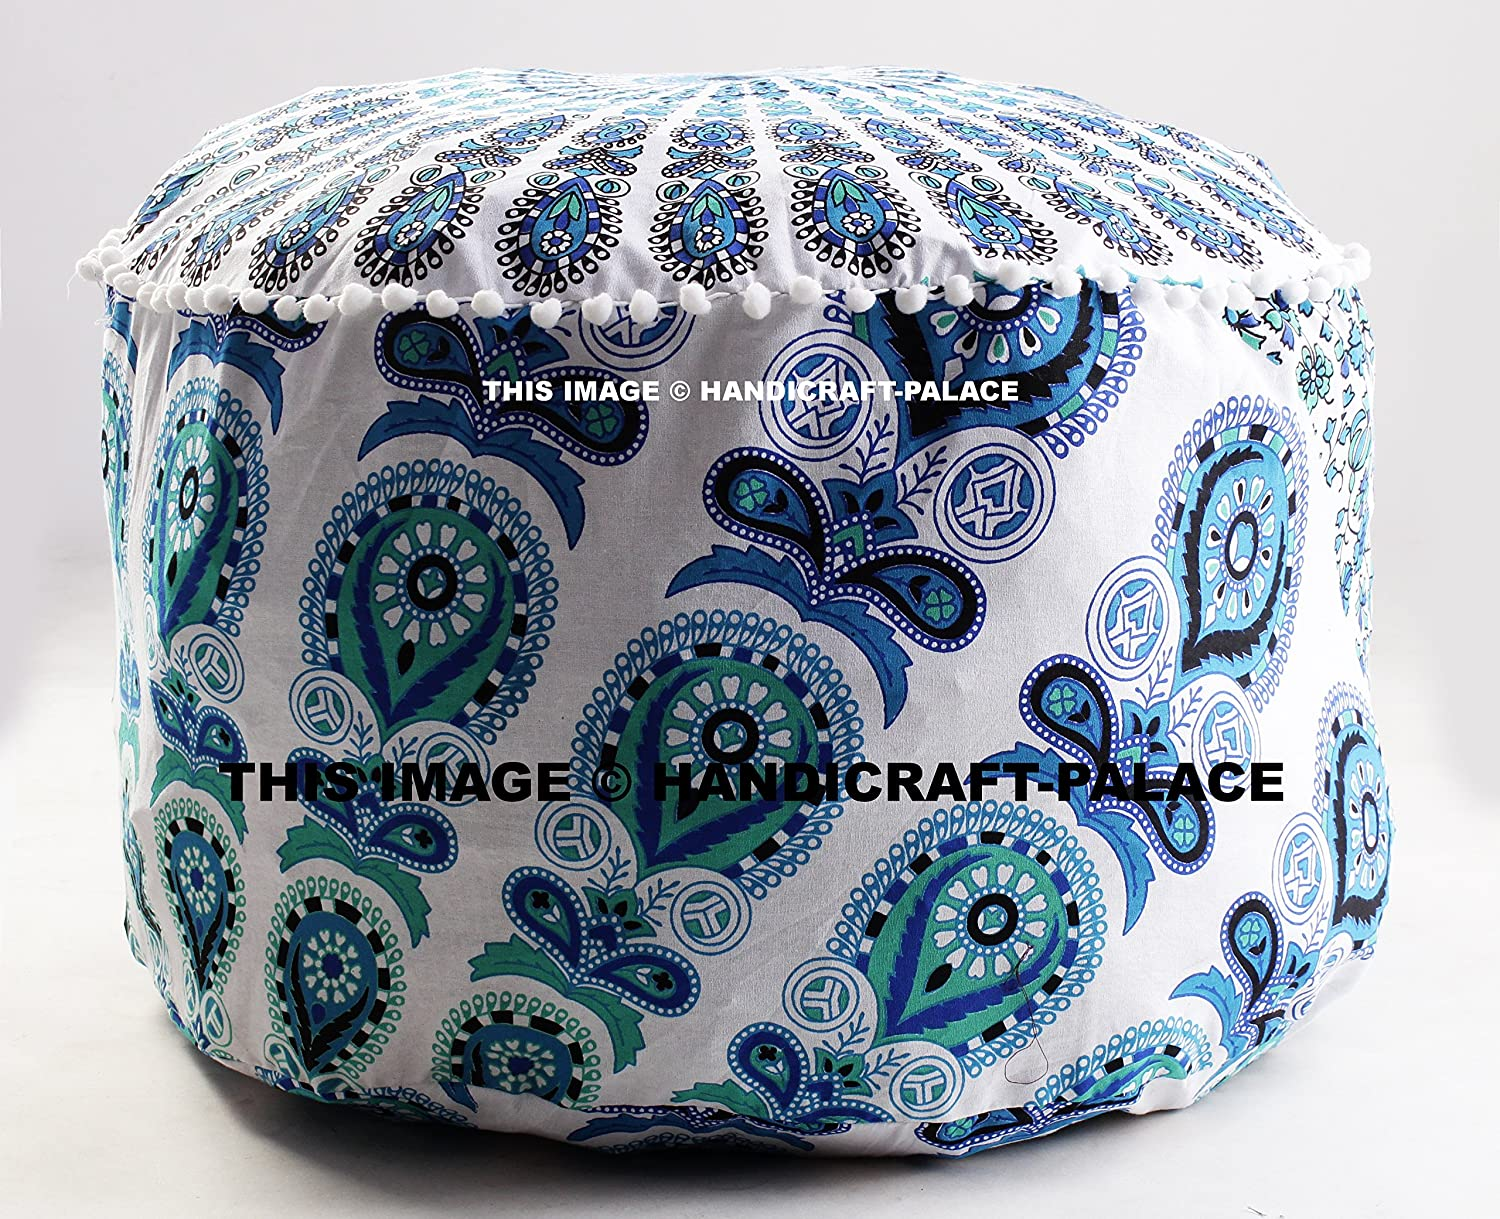 Indian Floor Pouf Ottoman Cover pouffe pouffes Foot Stool Peacock Mandala Round By Handicraft-Palace MOS-11